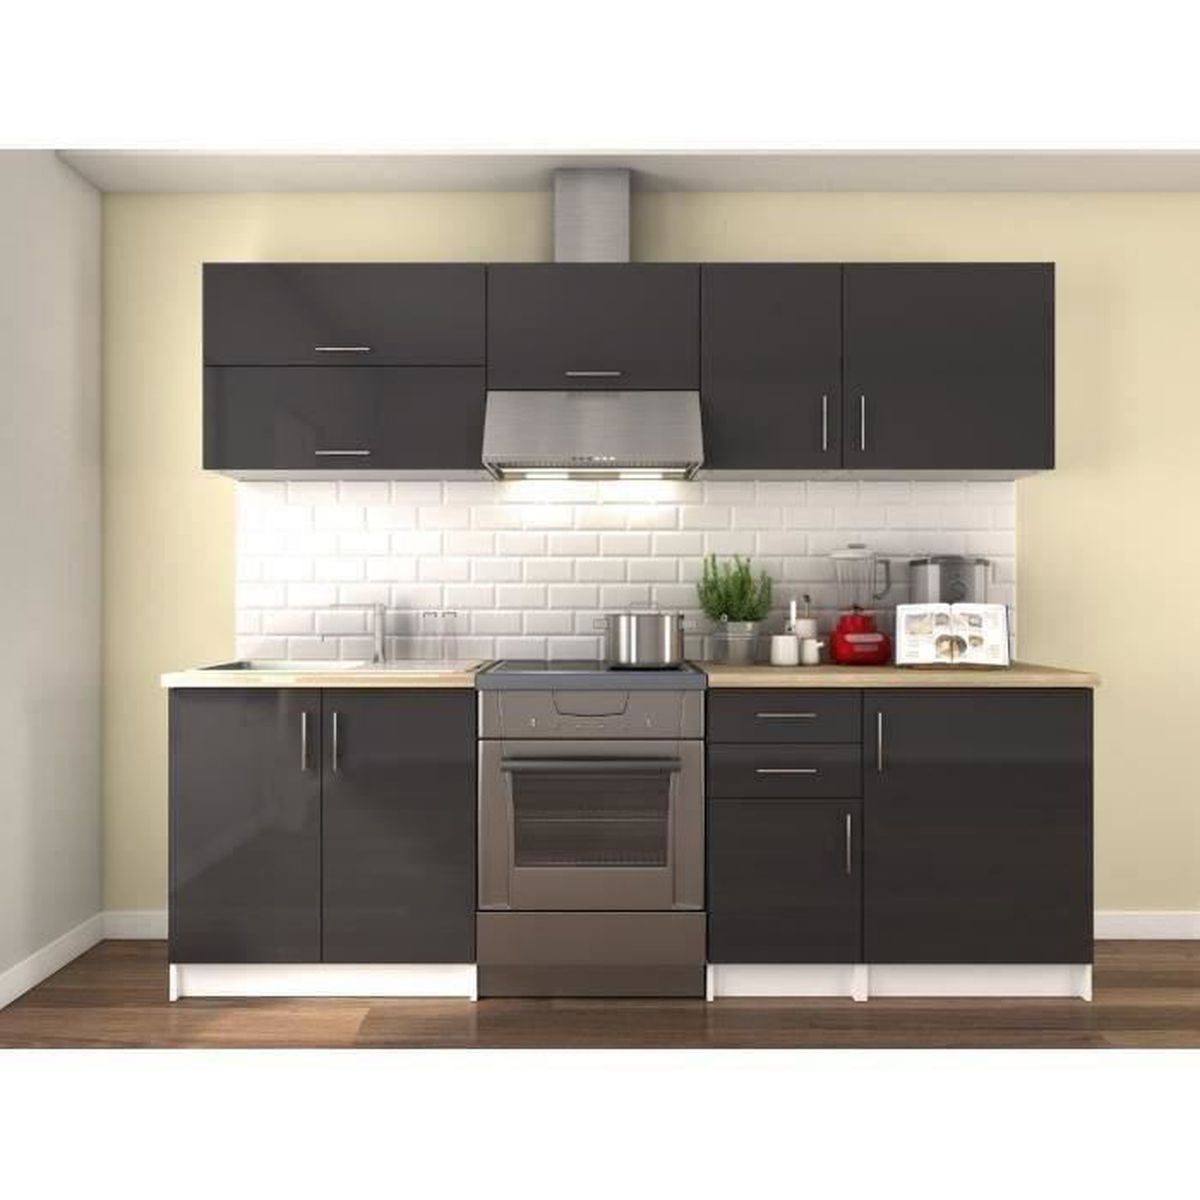 cuisine grise et bordeaux simple cuisine ouverte bordeau et gris with cuisine grise et bordeaux. Black Bedroom Furniture Sets. Home Design Ideas